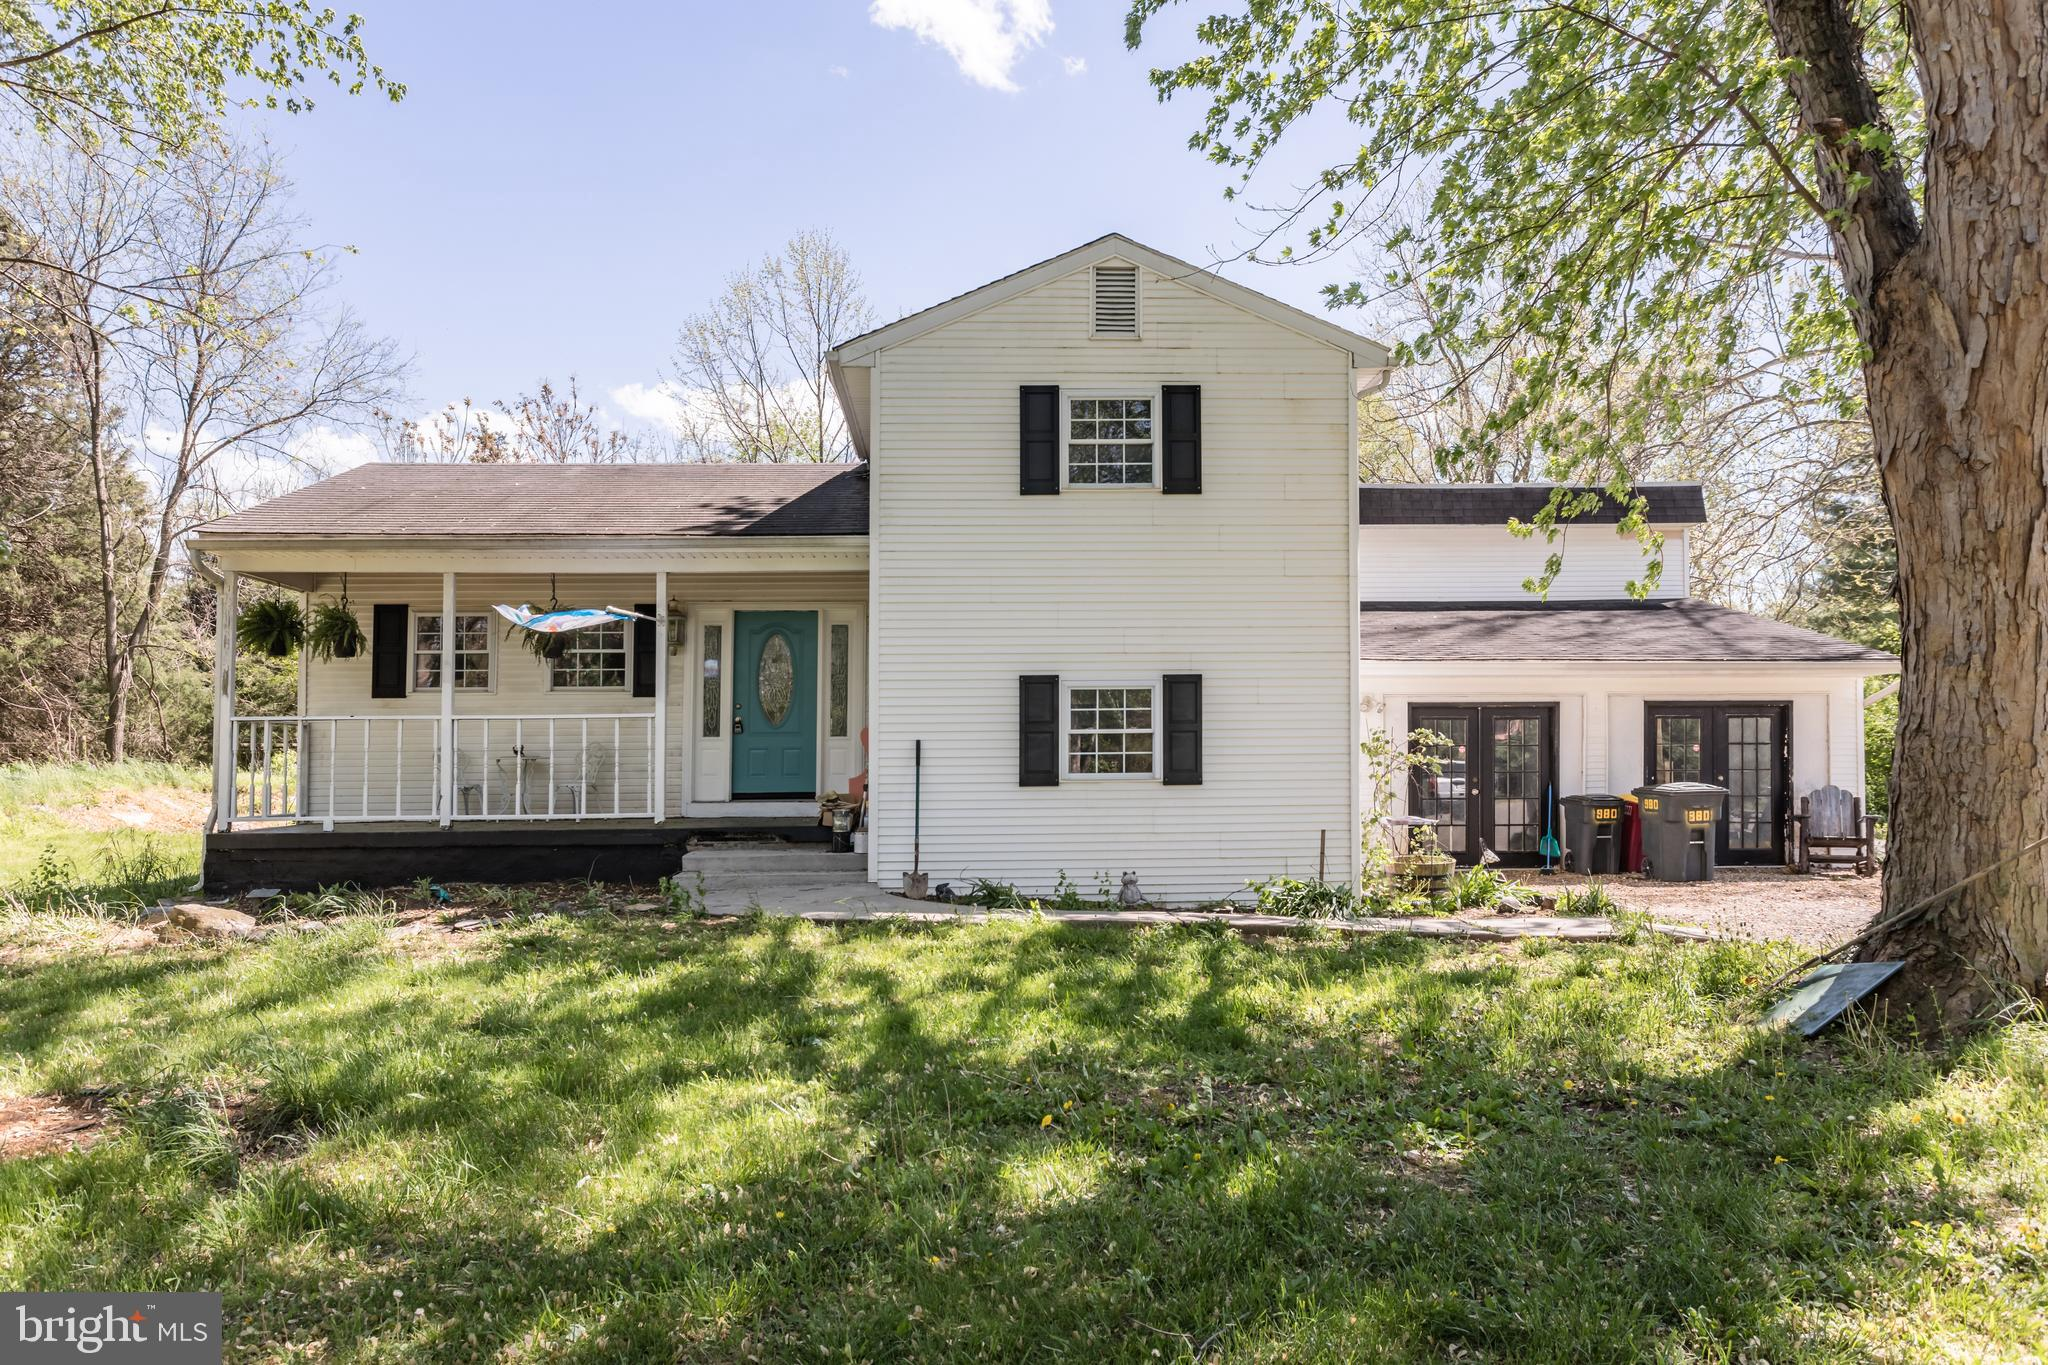 Call today to see this over 2300 sq. ft. home on 1.5 acres of land in a private setting.  The owner